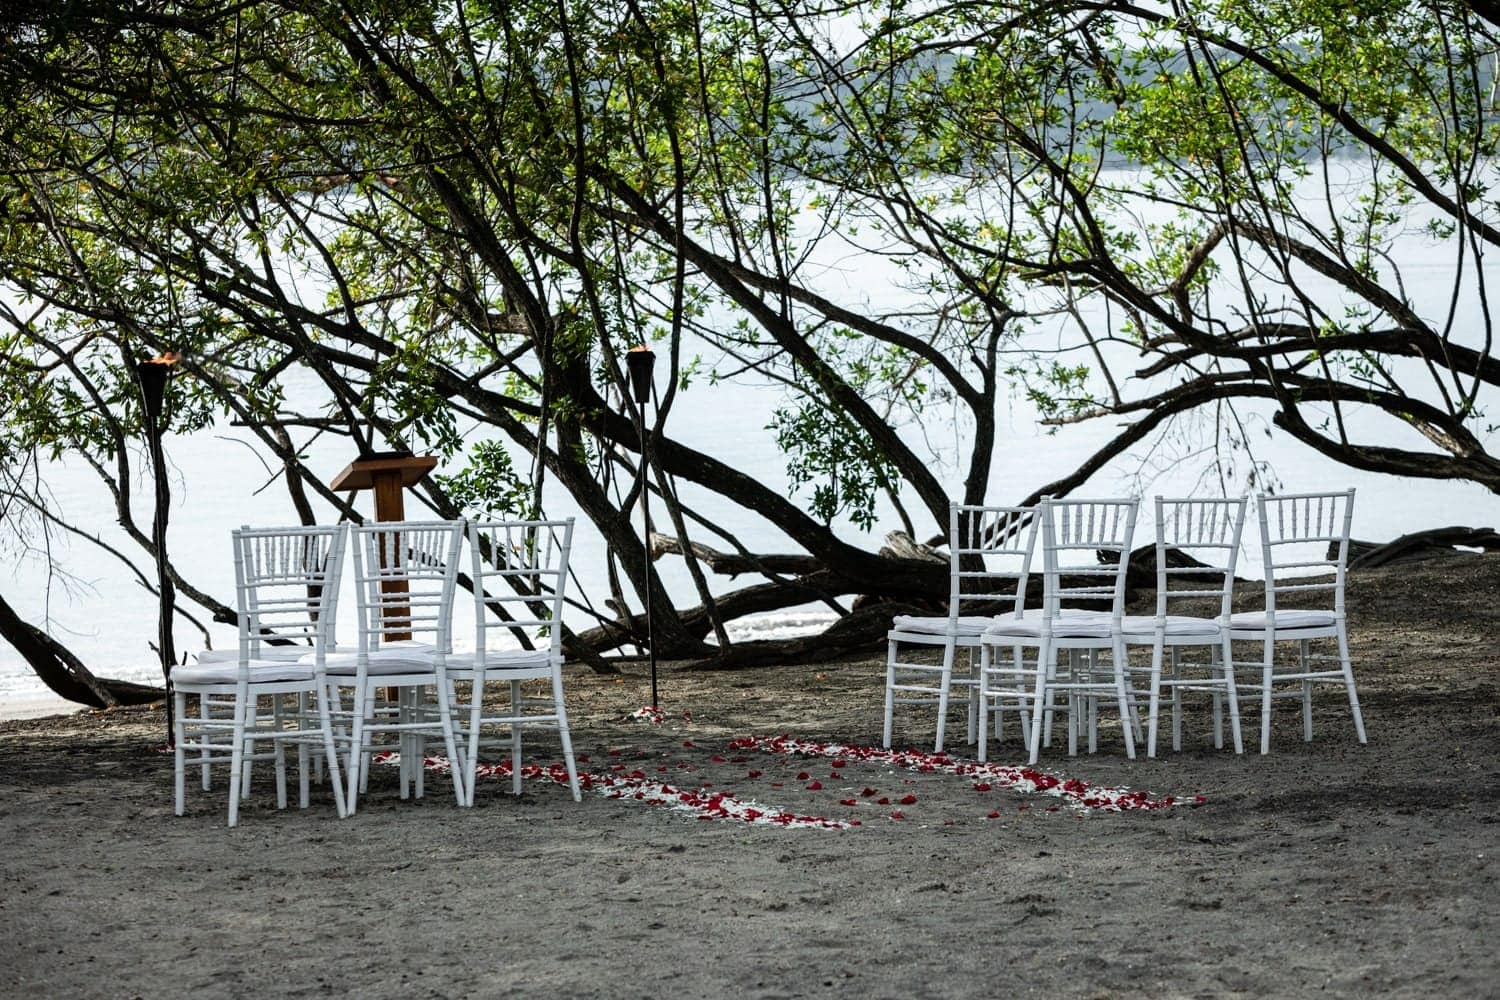 Beach wedding venue at Secrets Papagayo decorate with flower petals.